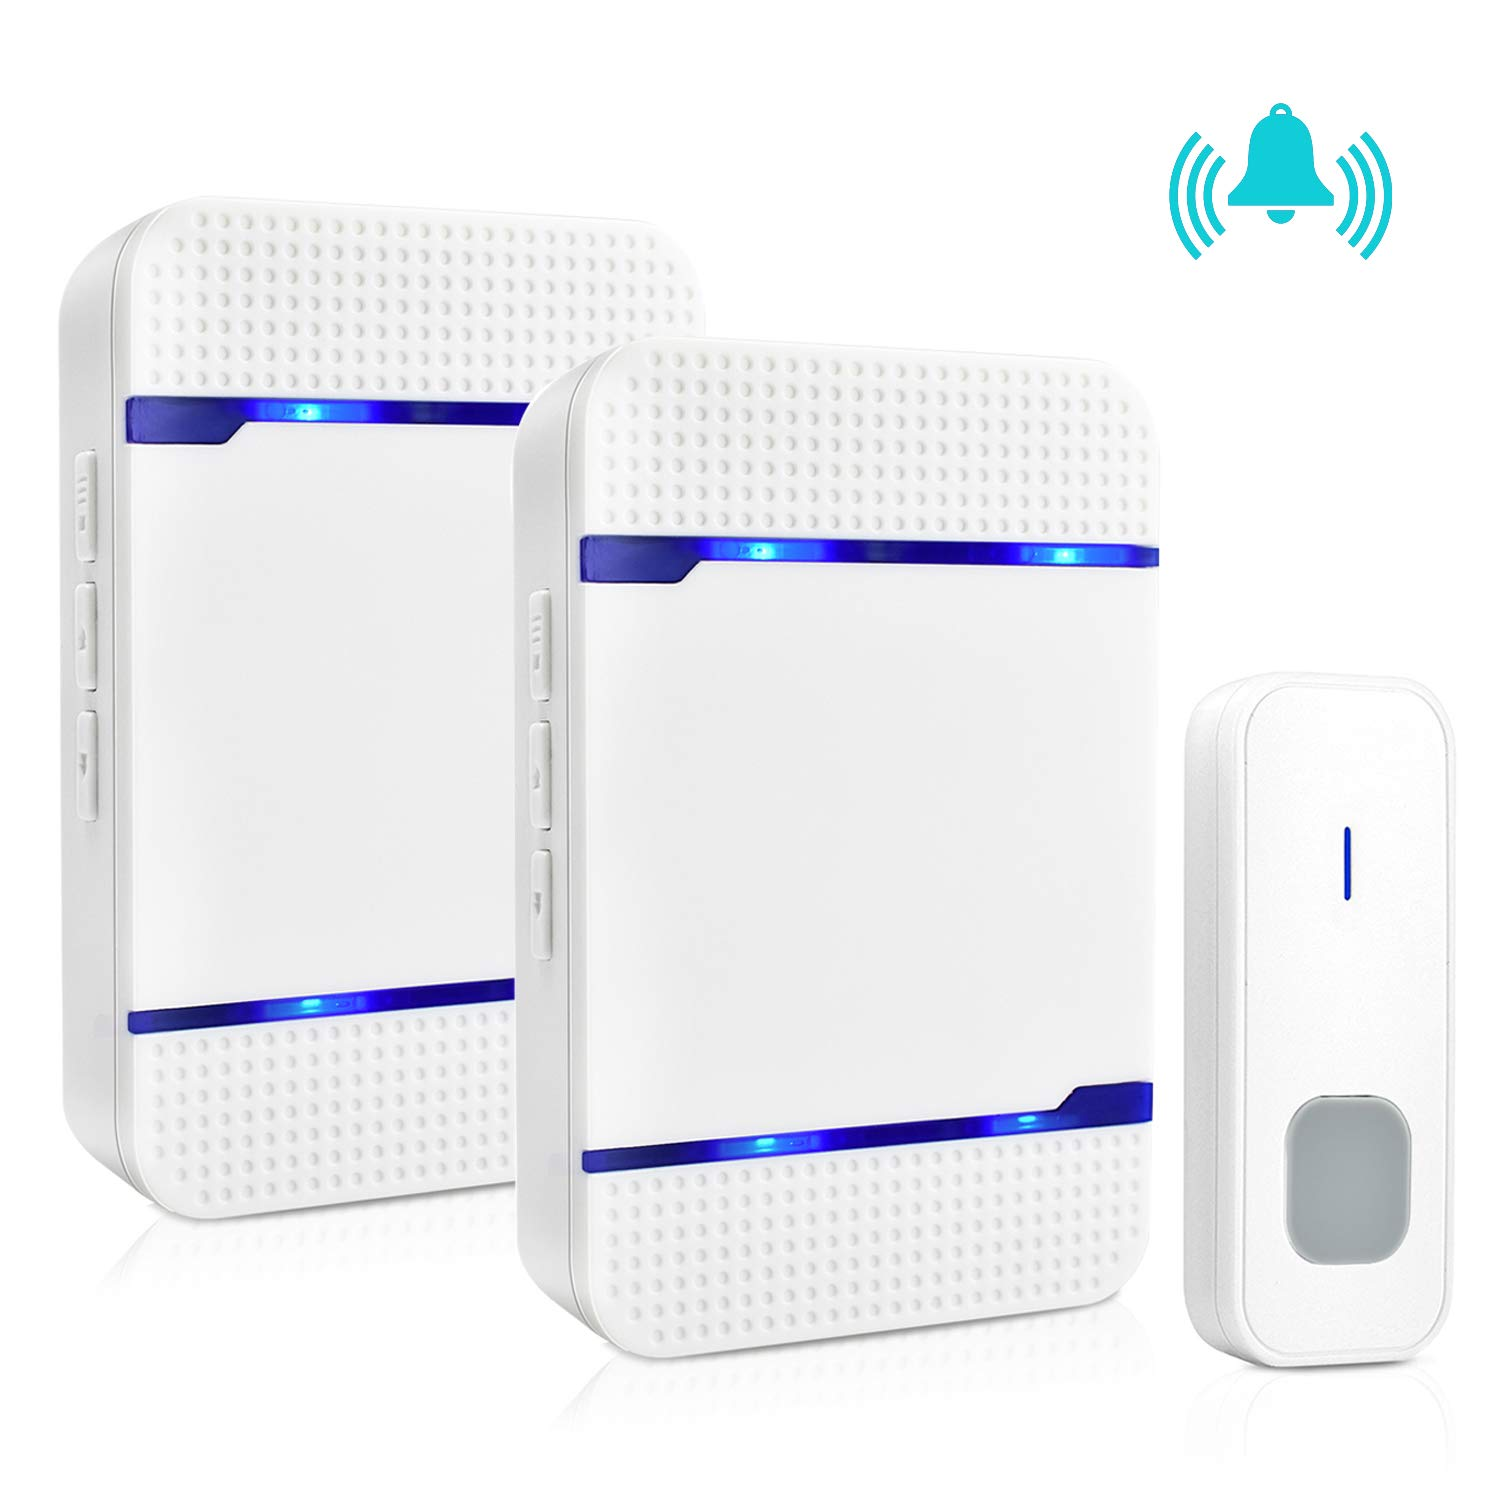 Wireless Doorbell,Waterproof Door Bell Chimes & Kit for Home,Classroom Operating at 1000ft,with 2 Receivers and 1 Push Button Transmitter,55 Melodies,5 Level Volume(0db to 110 db)